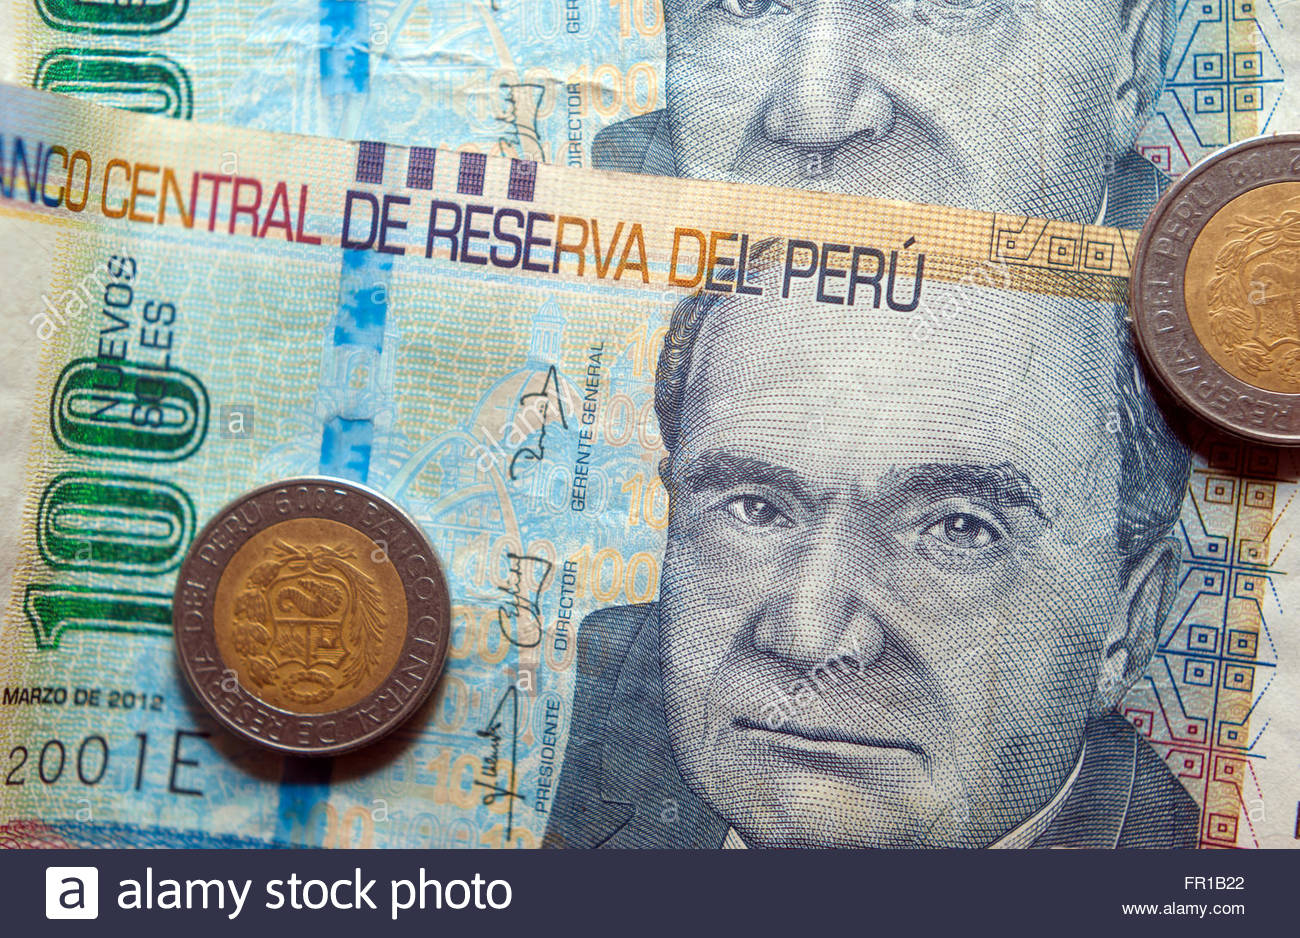 Peruvian soles peru sol currency notes and coins stock photo peruvian soles peru sol currency notes and coins altavistaventures Image collections